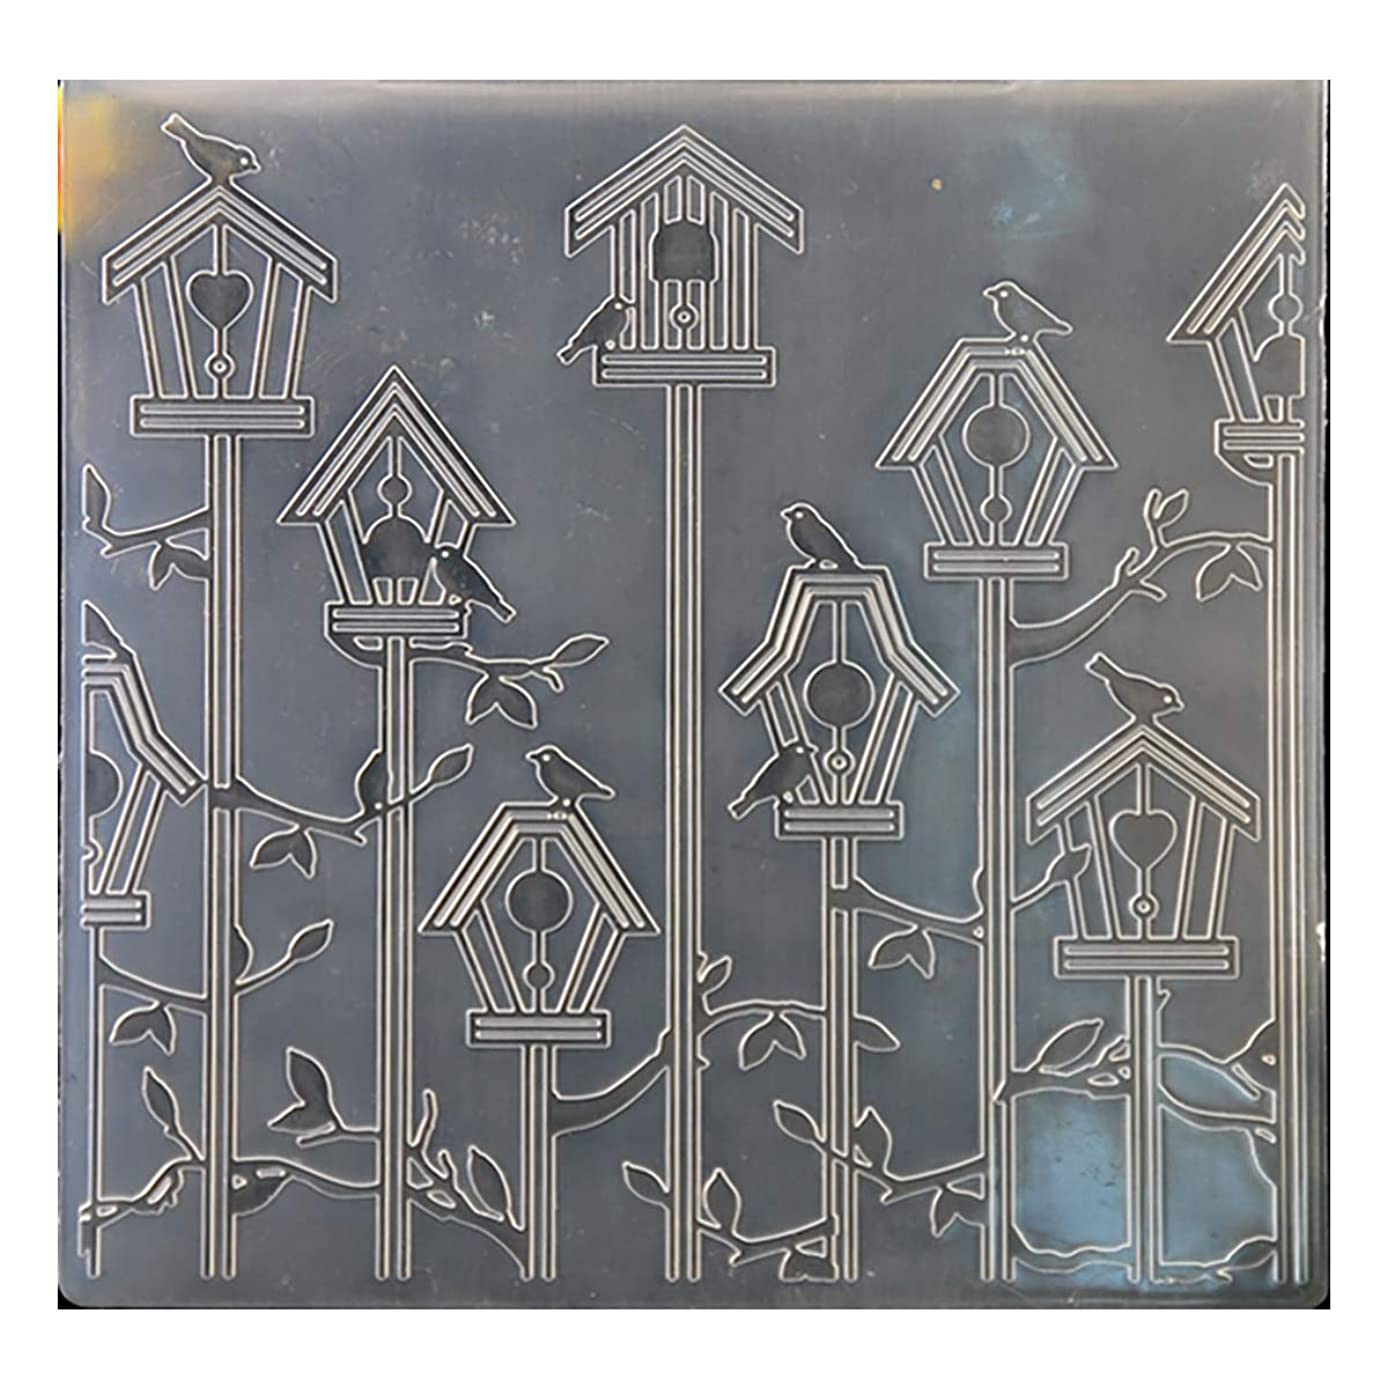 Kwan Crafts Birdcage Bird Plastic Embossing Folders for Card Making Scrapbooking and Other Paper Crafts, 15x15cm